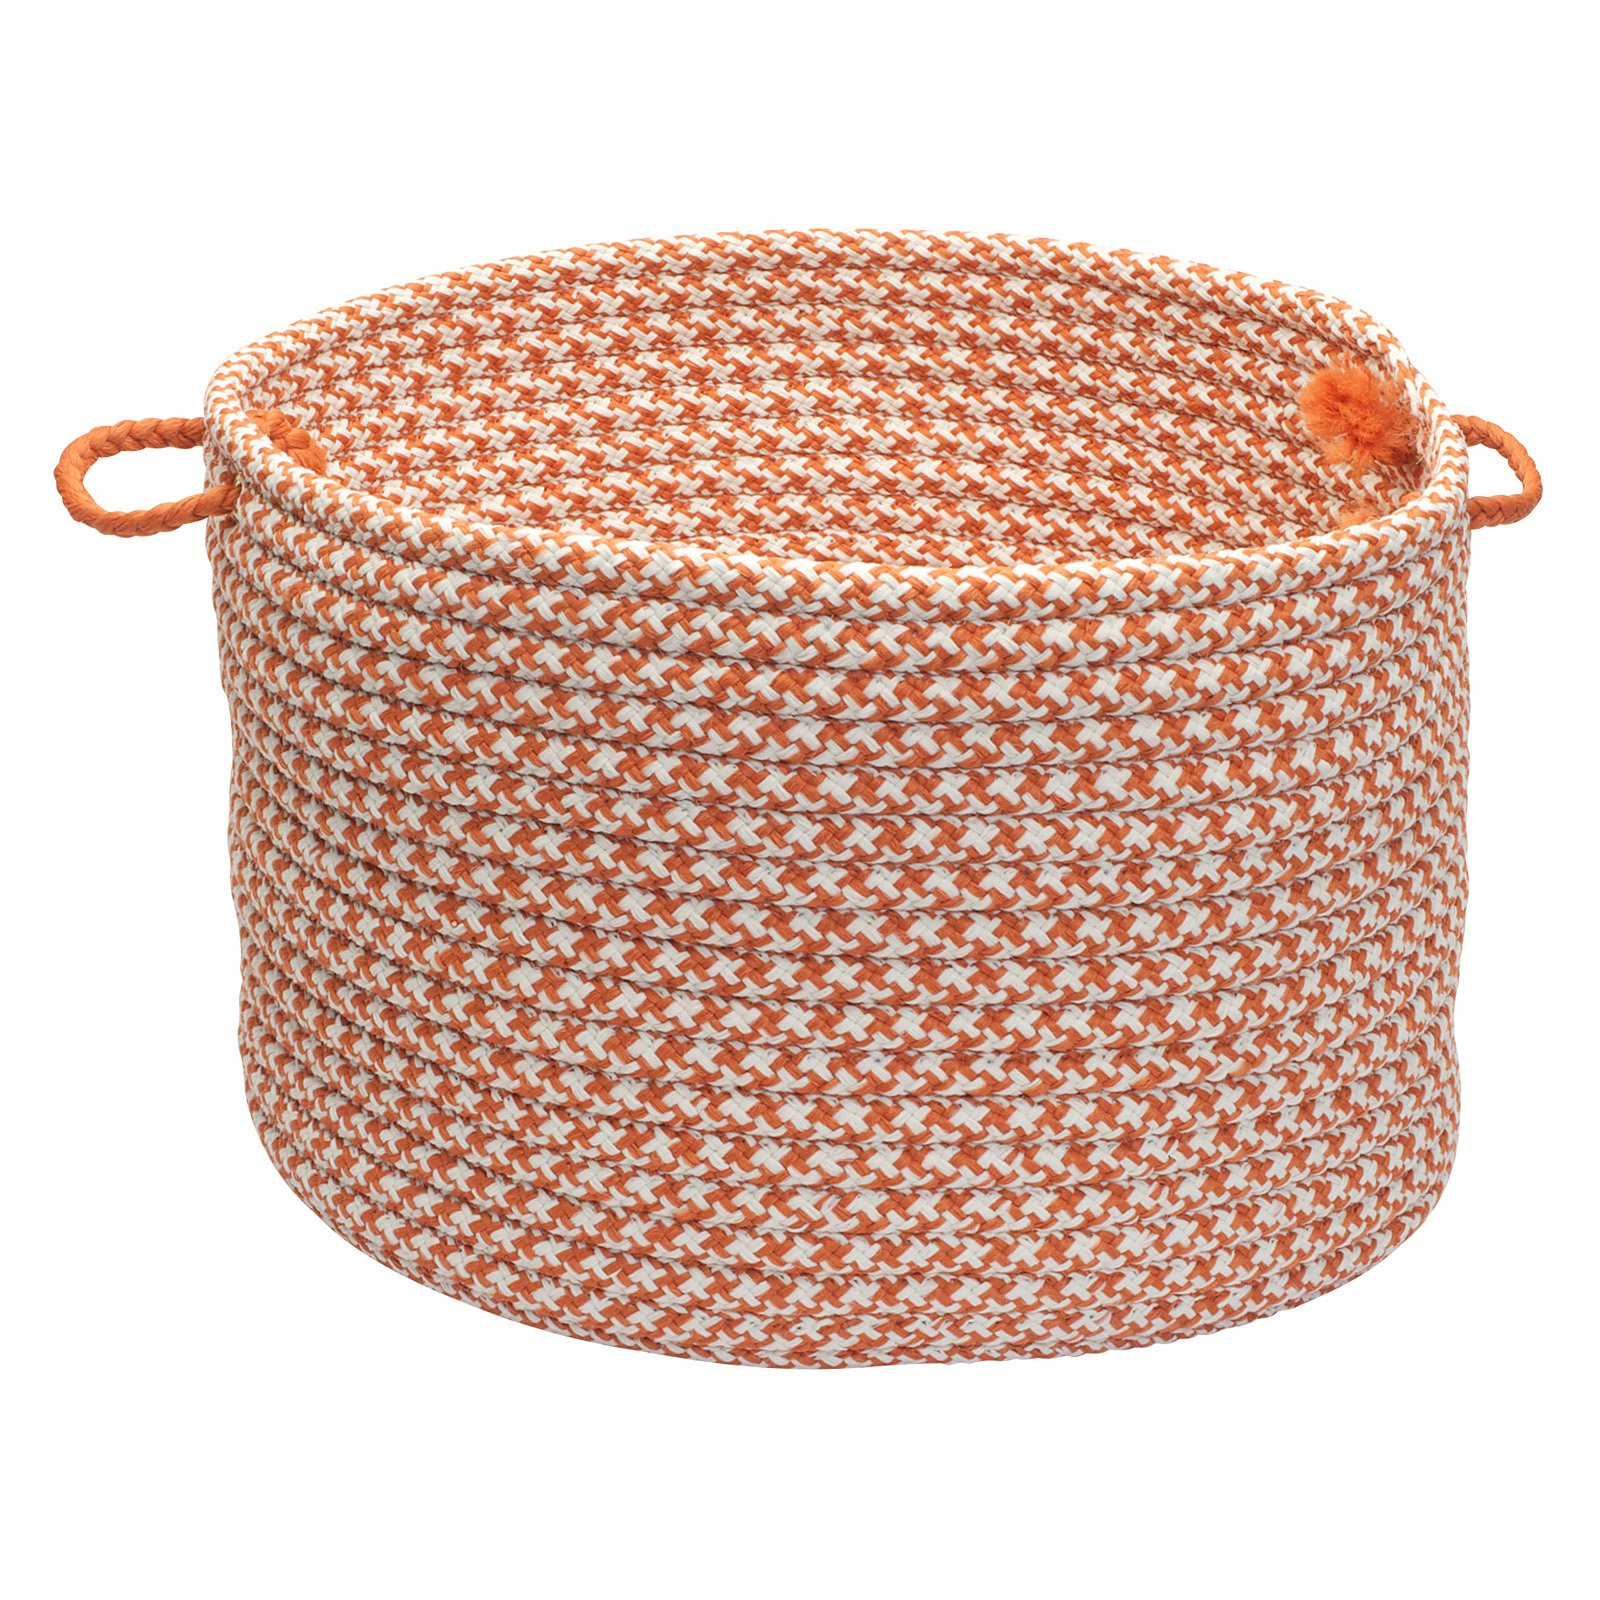 Outdoor Houndstooth Tweed Storage Basket - available in 2 sizes